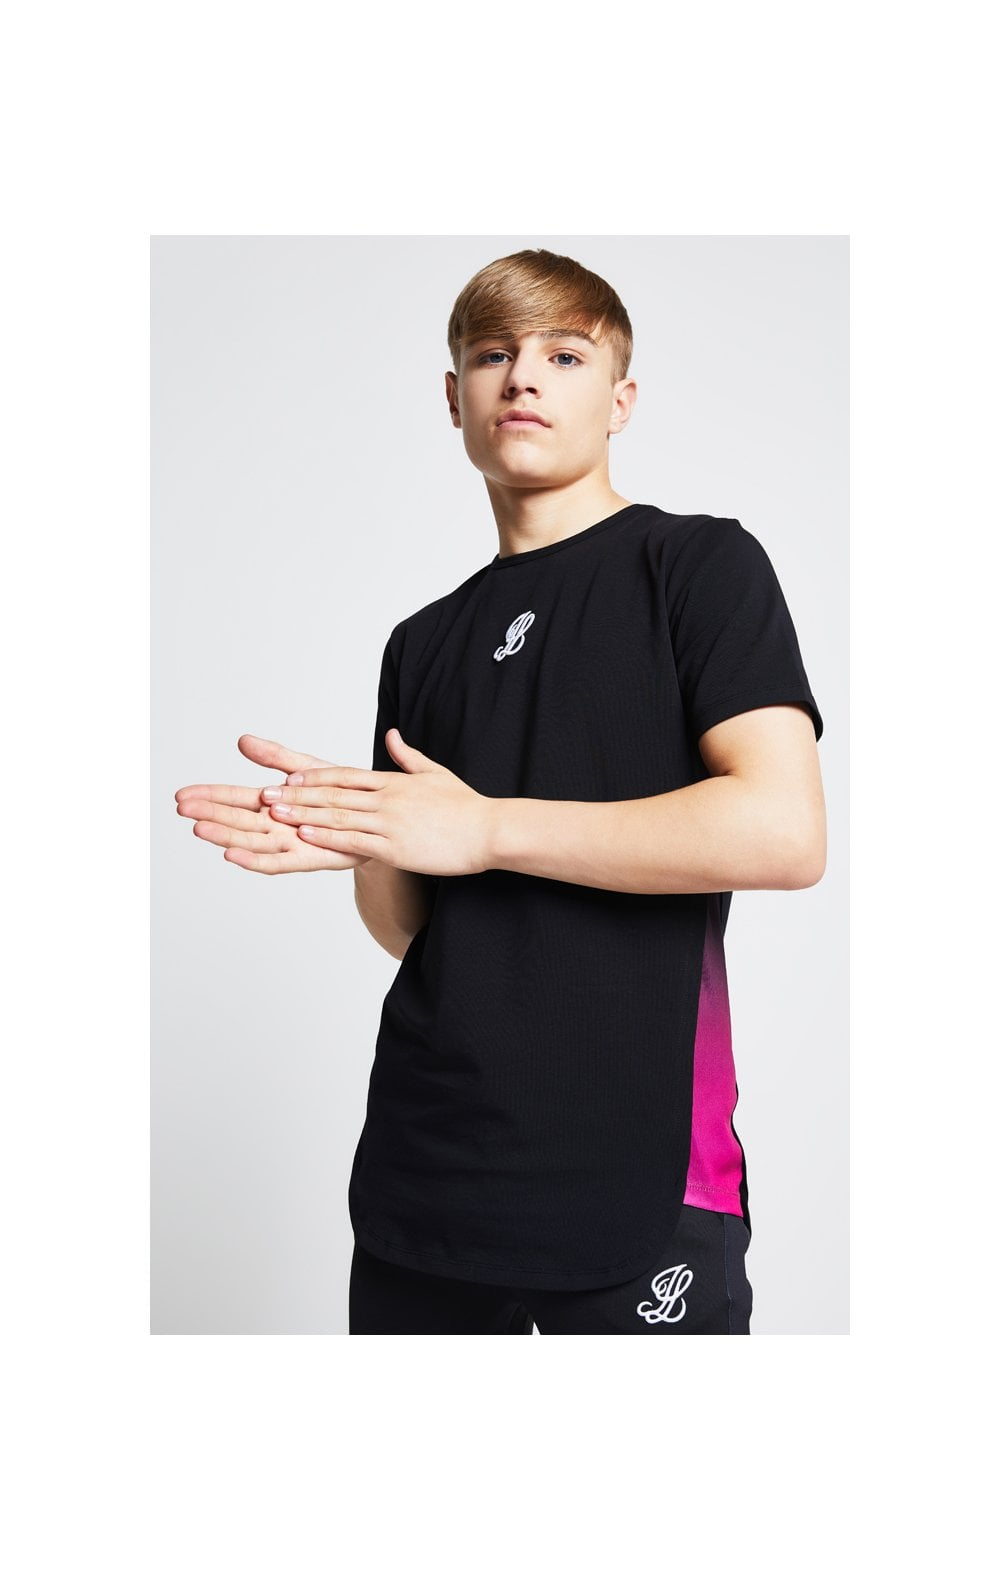 Illusive London T-Shirt Glisse - Noir et Rose